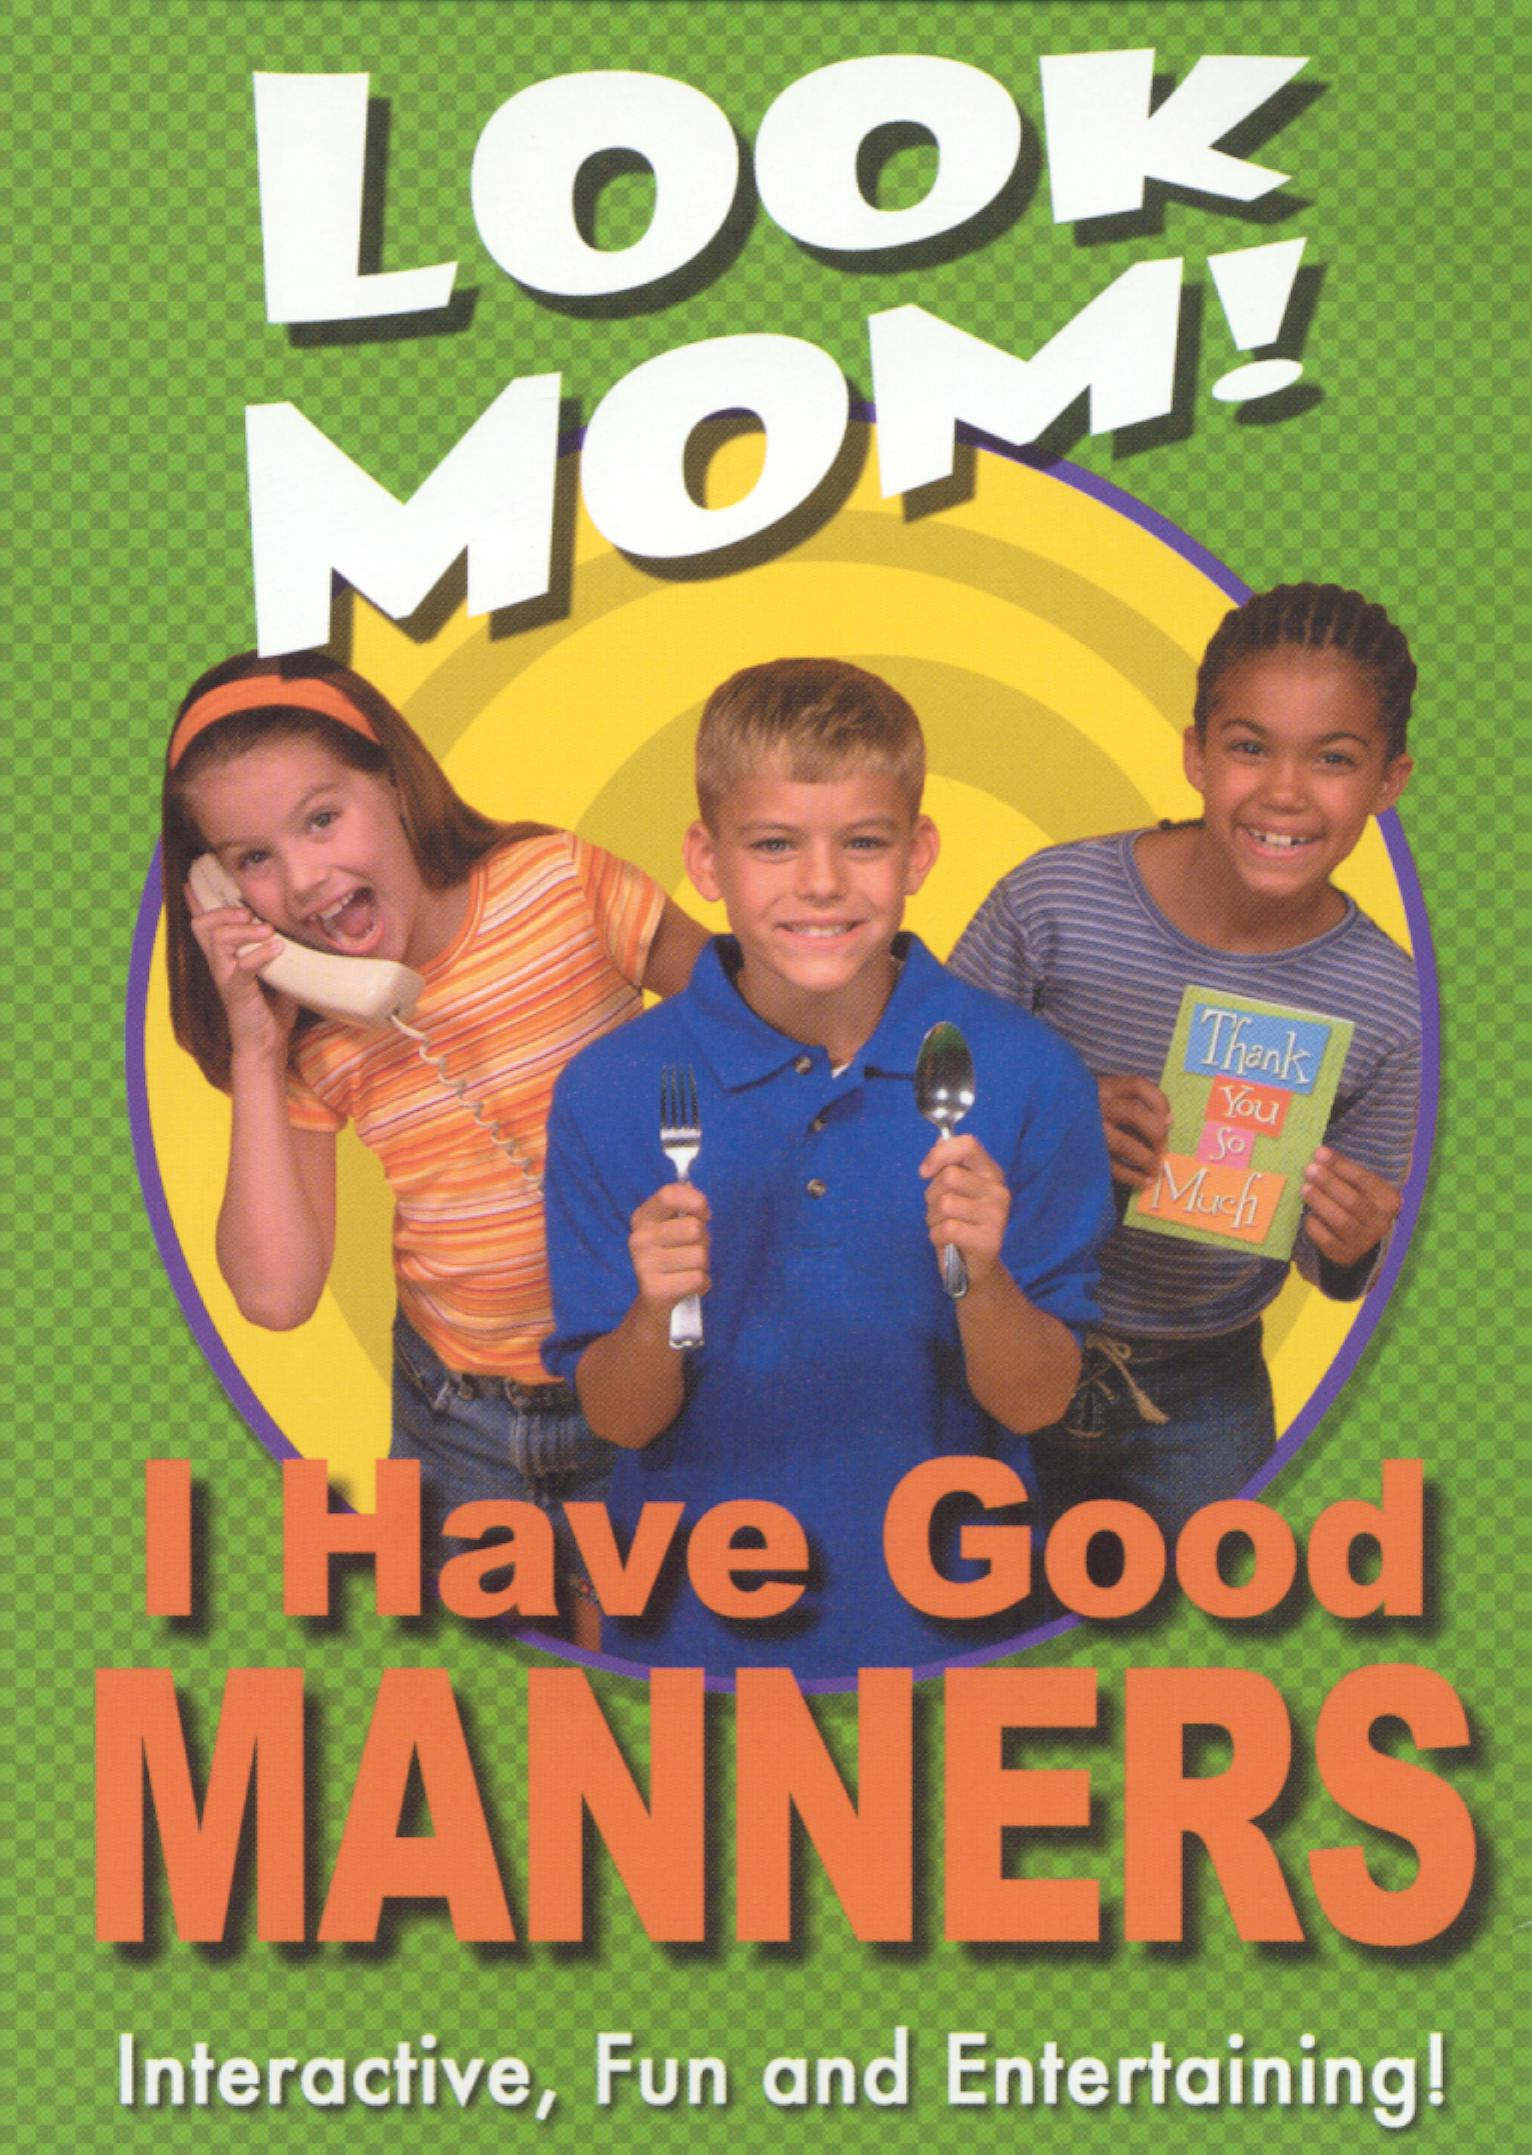 Look Mom! I Have Good Manners